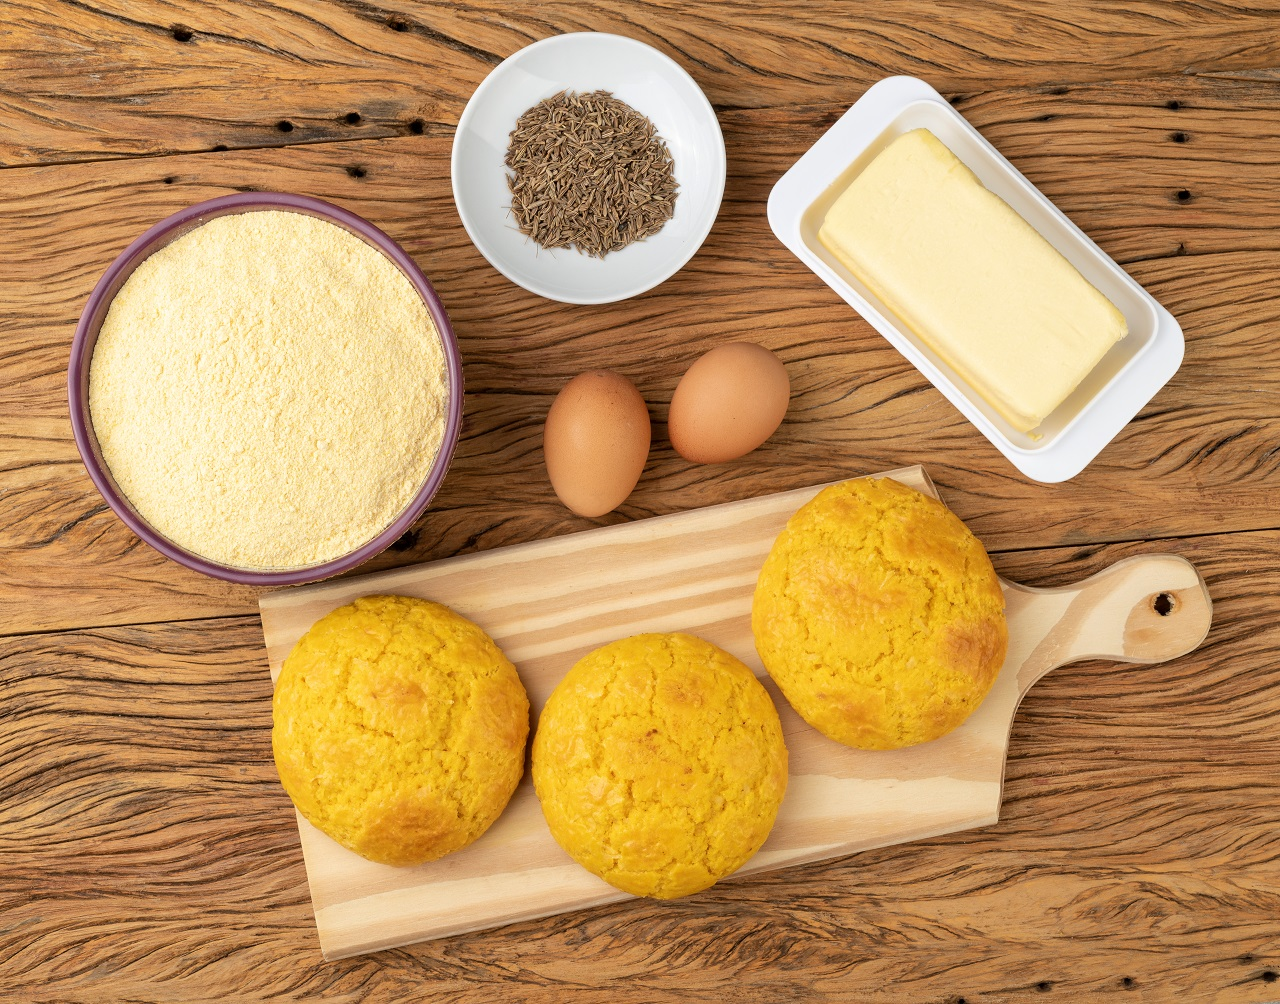 Broa-typical-brazilian-corn-flour-bread-with-ingredients.-Butter-eggs-herbs-and-fuba-corn-flour